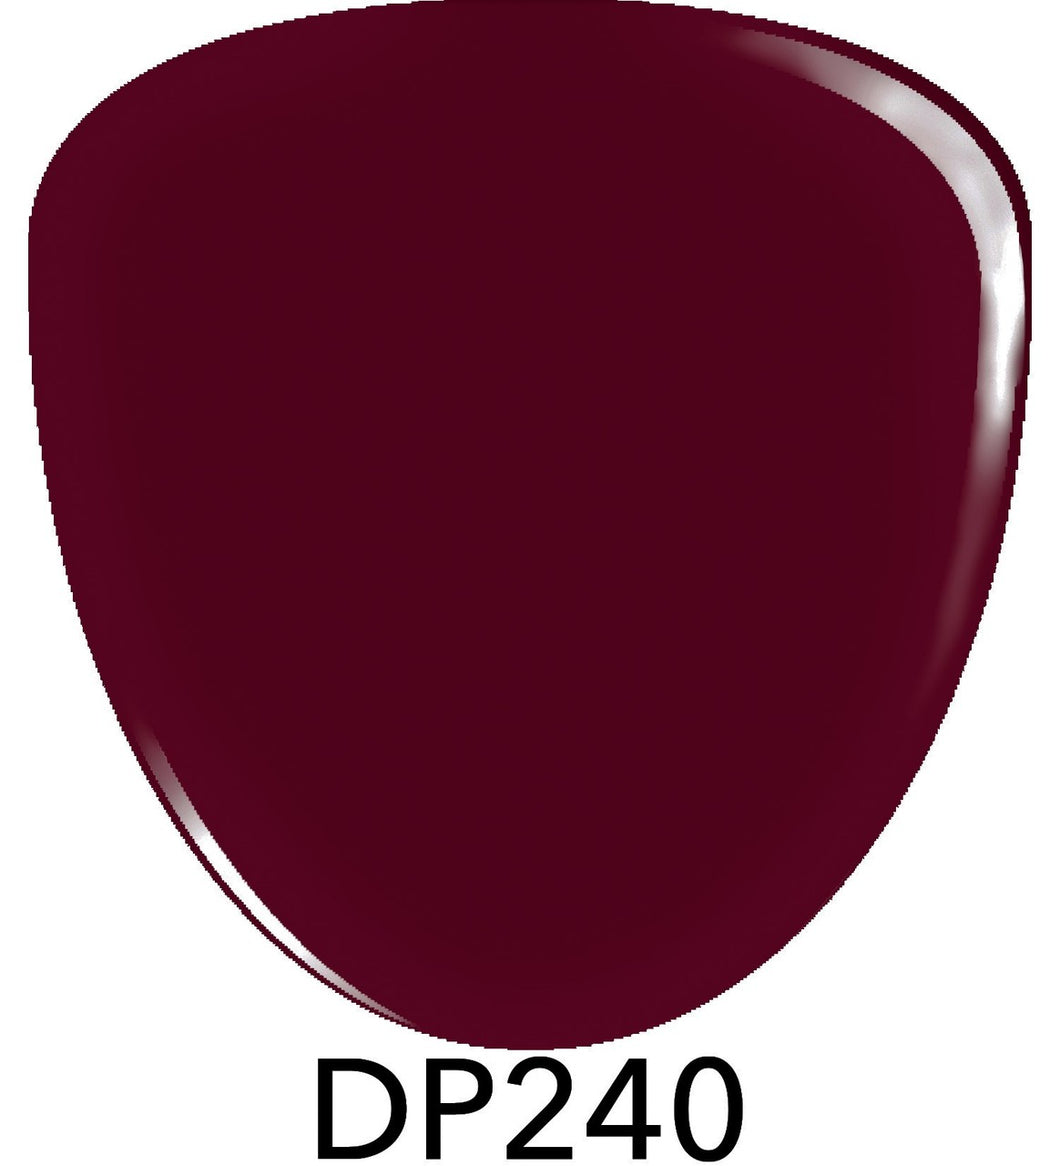 Smalto Bordeaux scuro in Polvere